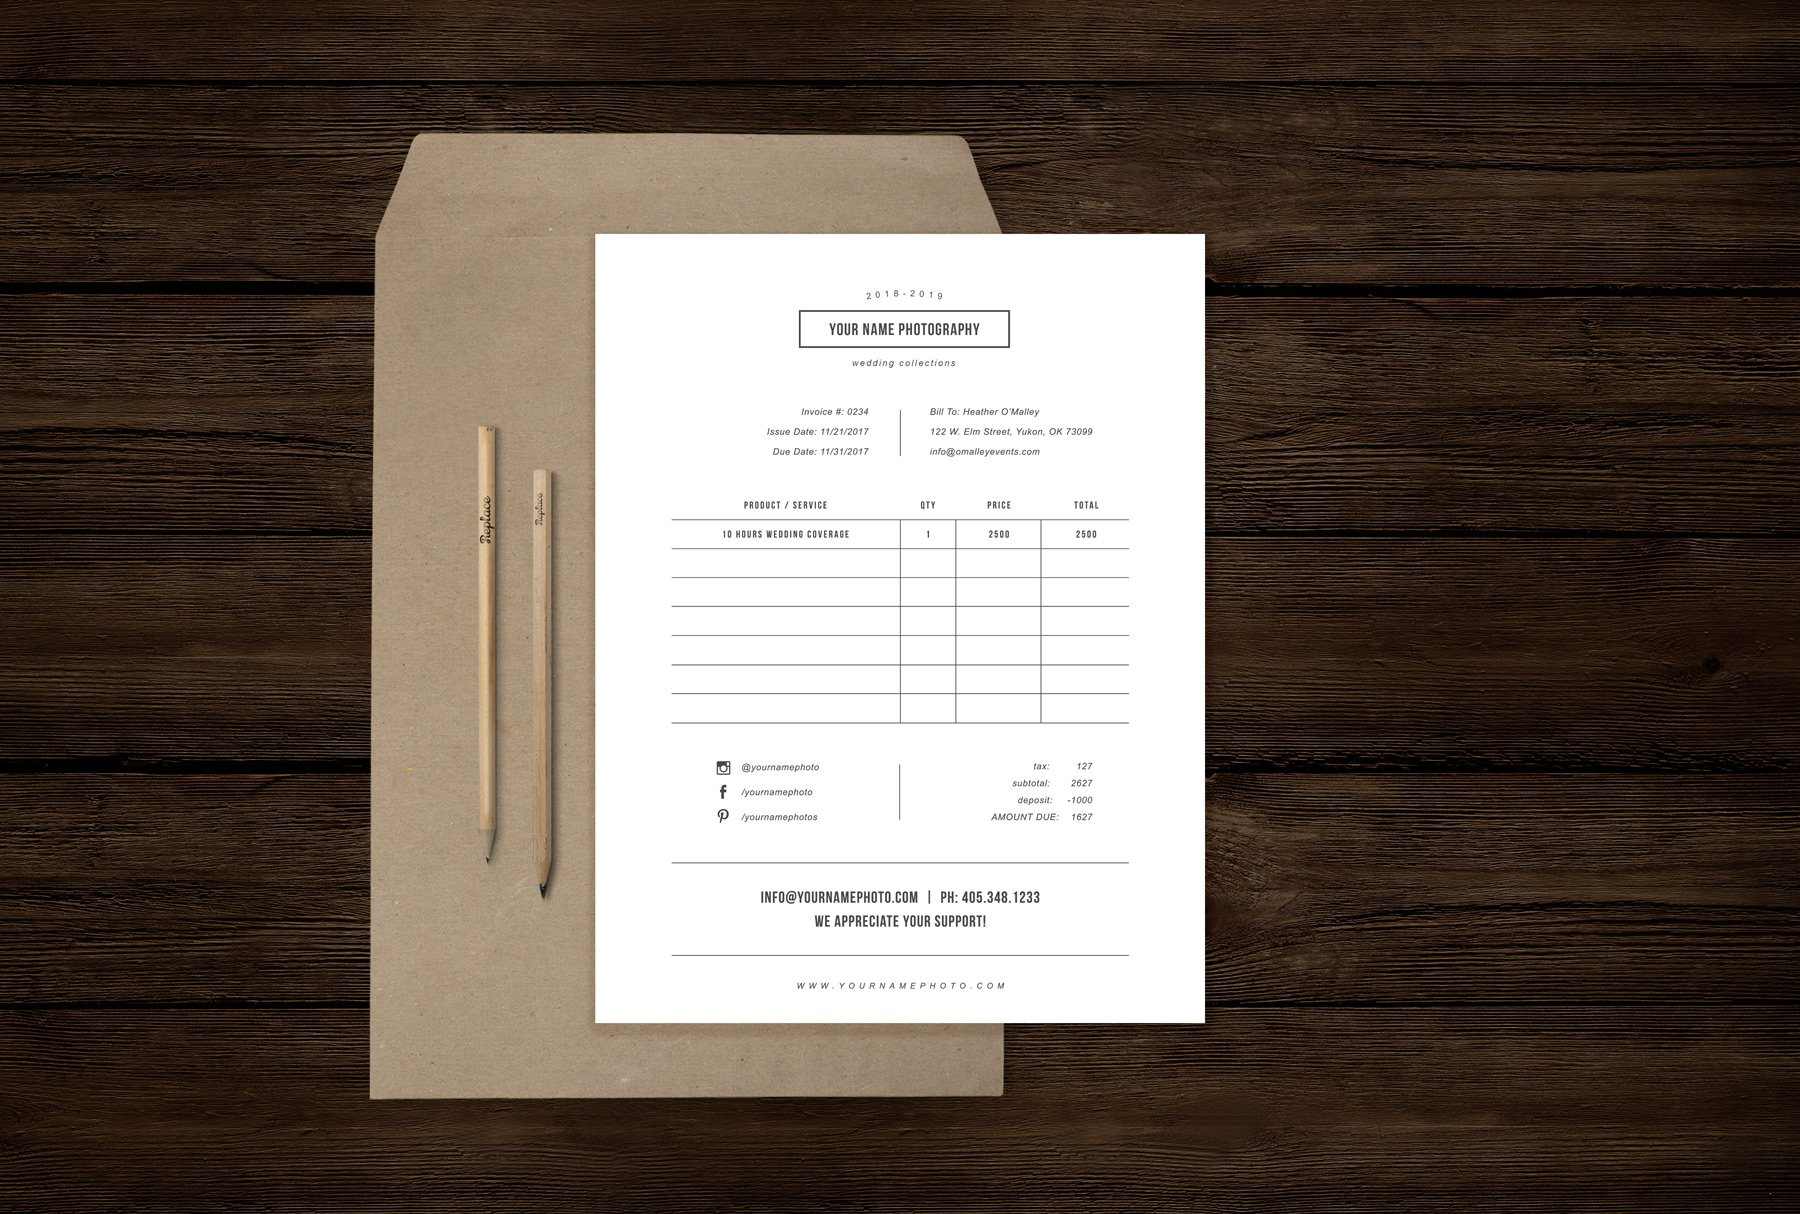 Wedding Photography Invoice: Photography Forms